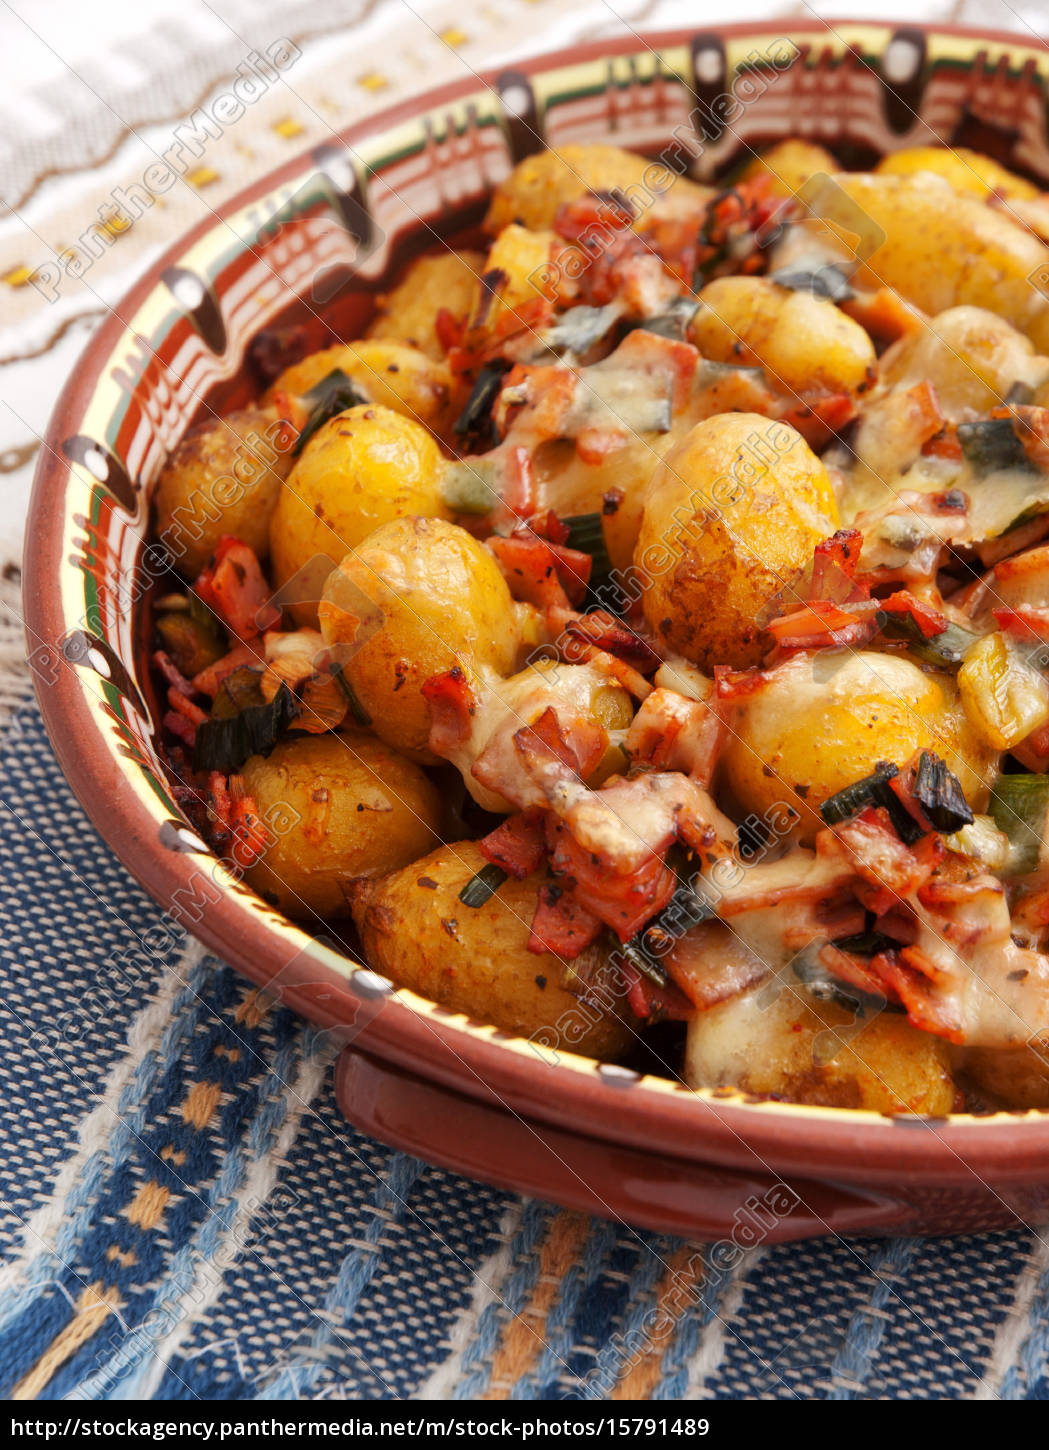 baked, potatoes, with, ham, and, cheese, baked - 15791489